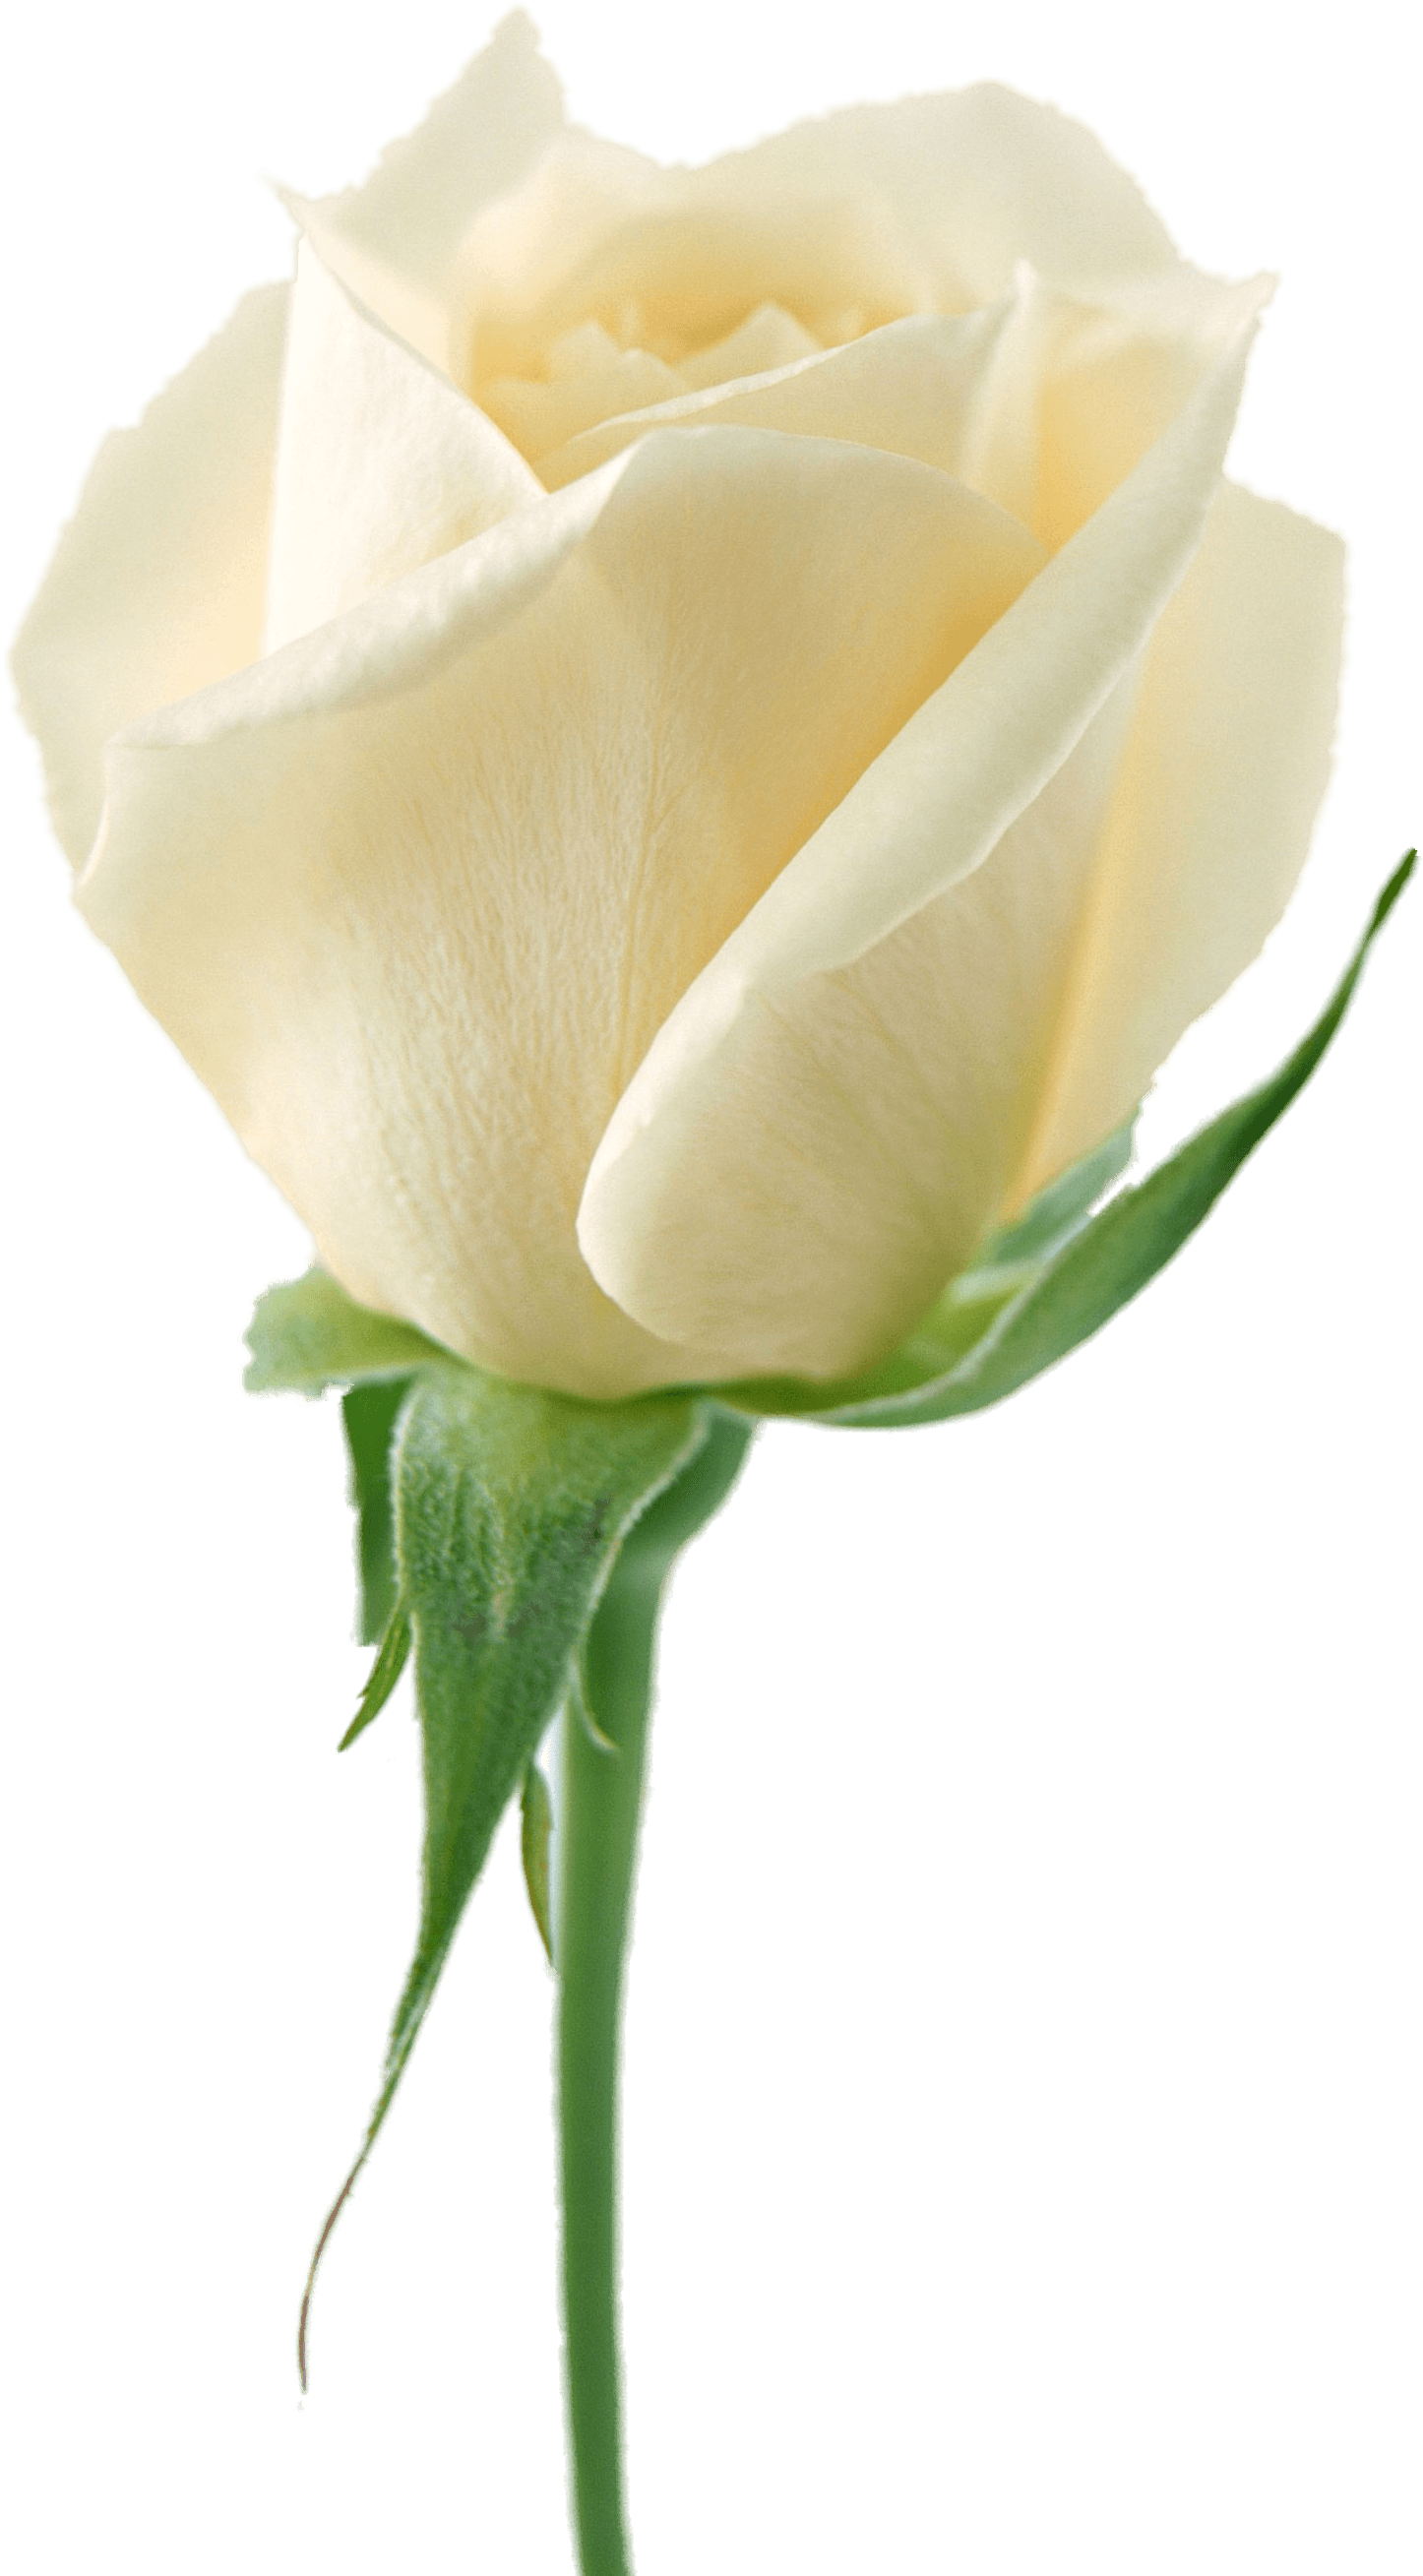 White flower garland png. Download rose image picture